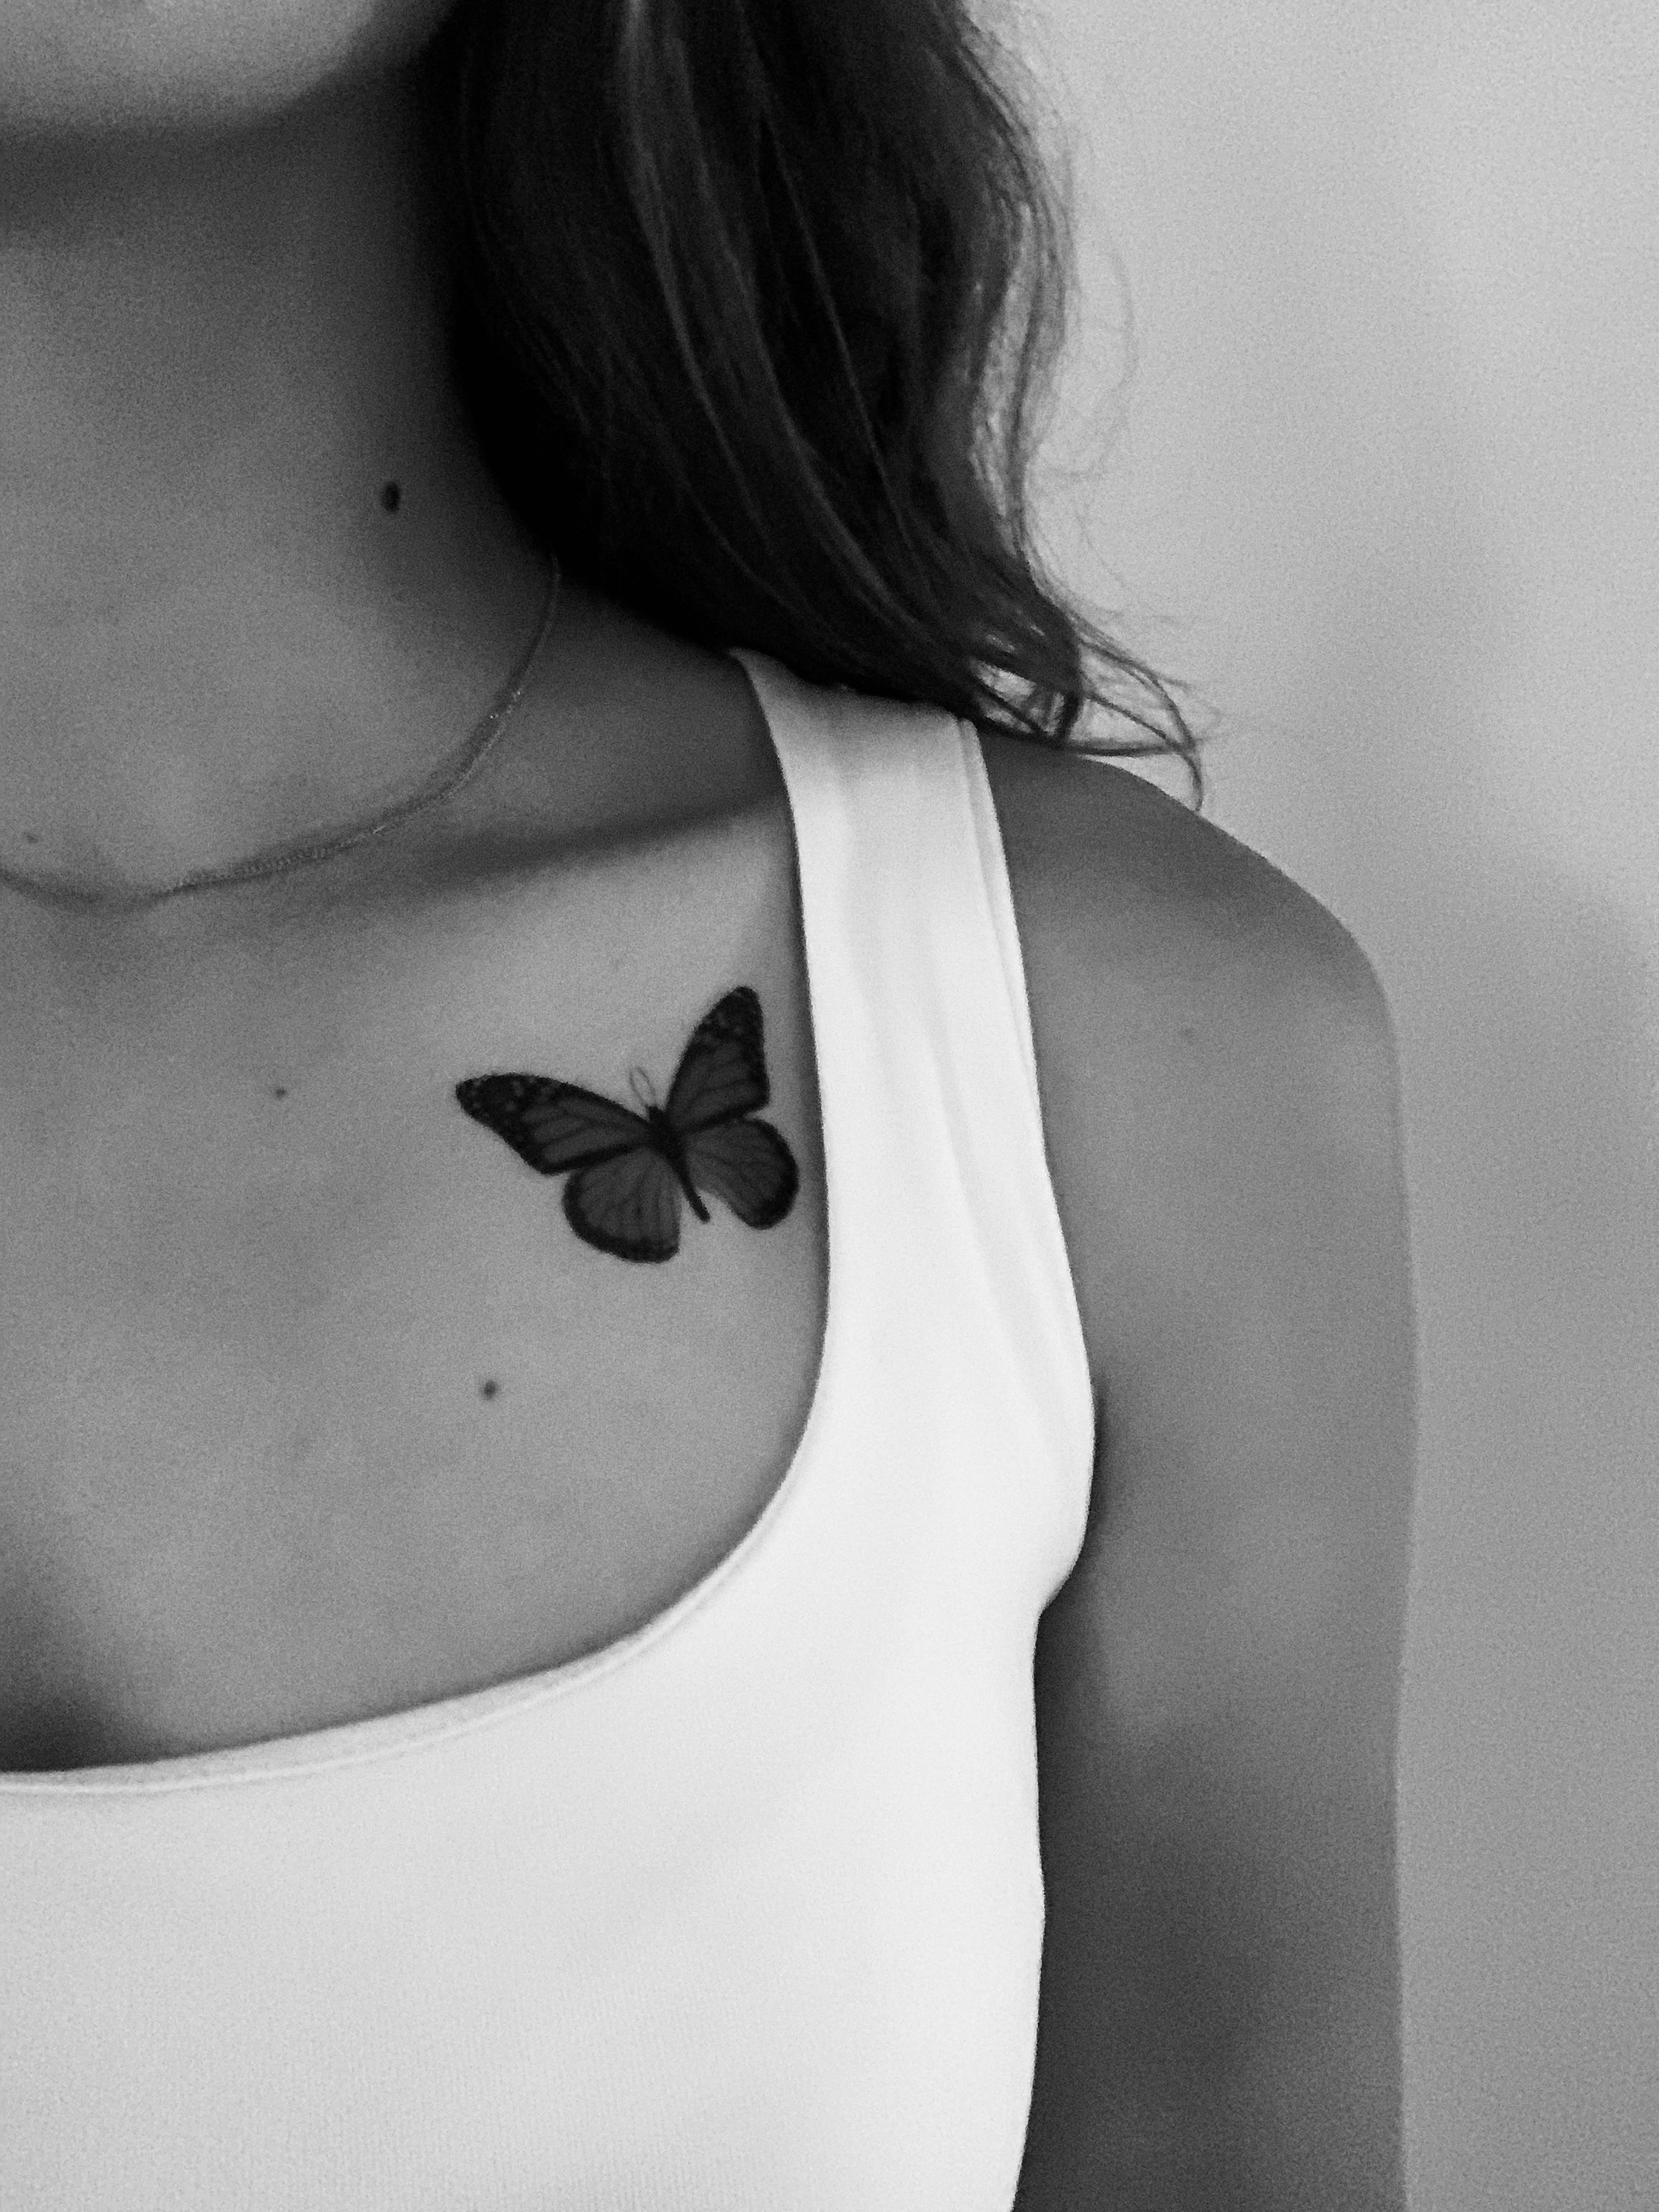 Pin By Gayathry V On Inked In 2020 Collar Bone Tattoo Collar Tattoo Cool Shoulder Tattoos